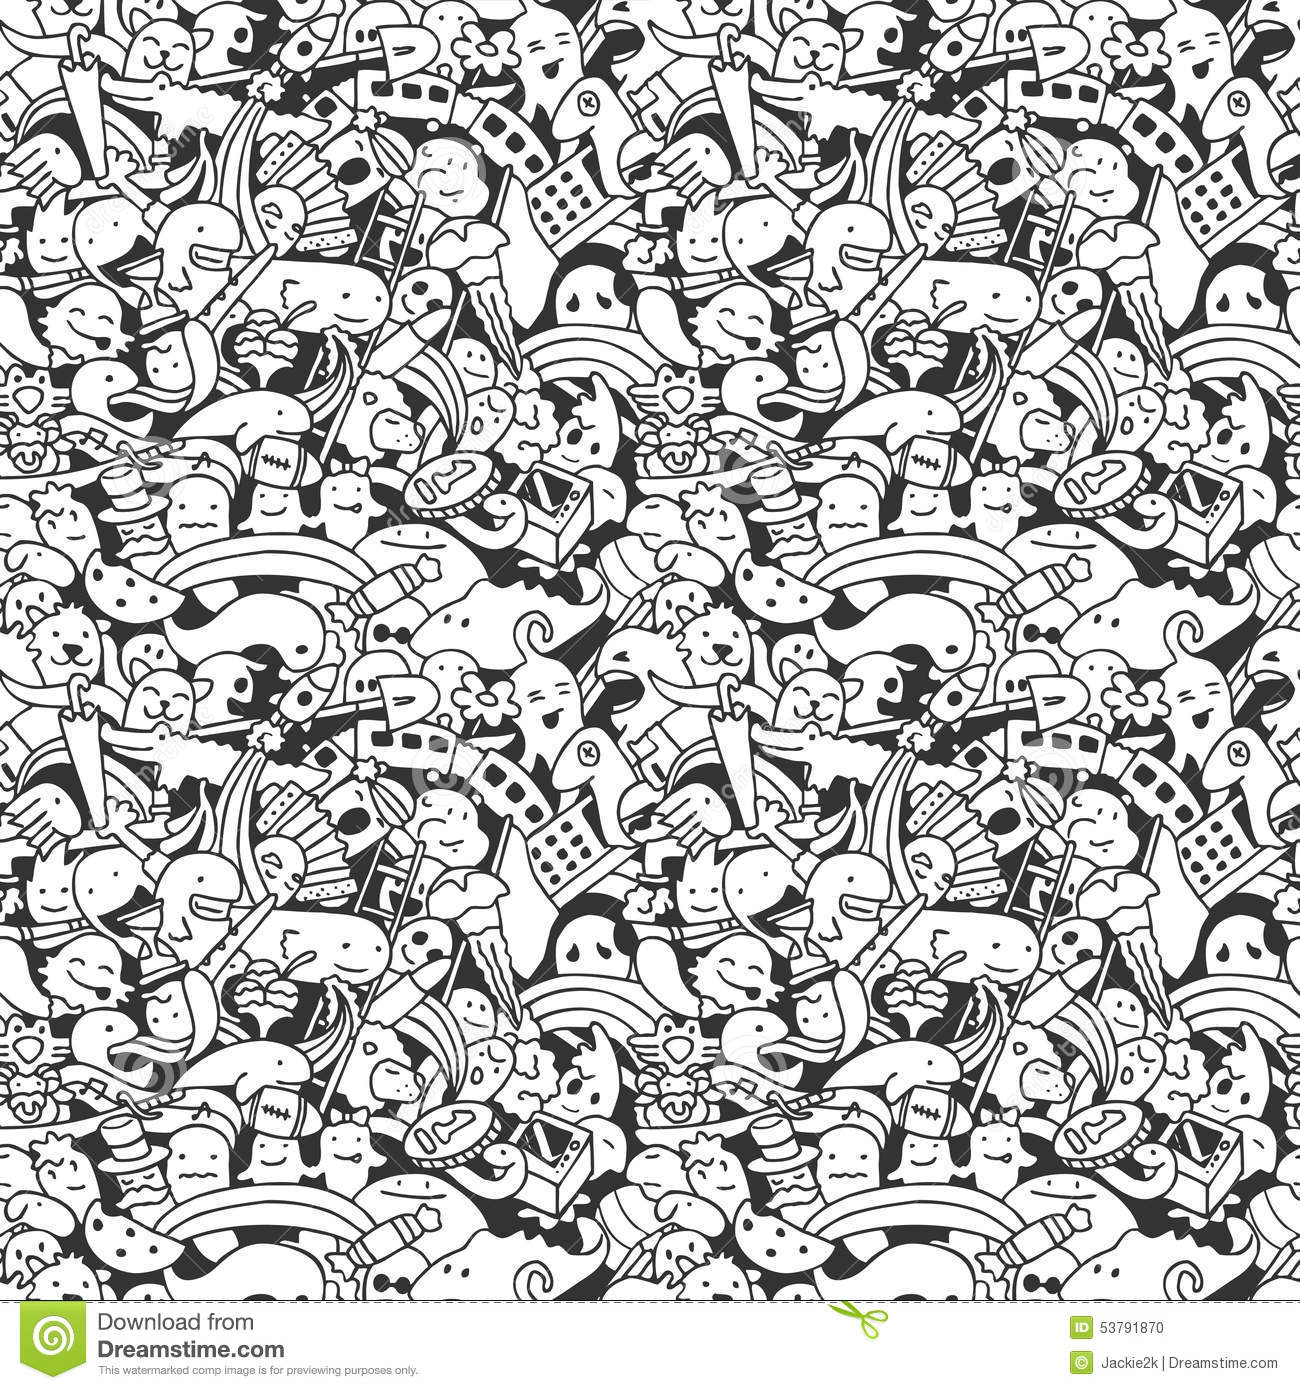 Doodle Pattern With Crazy Doodle Characters Stock Vector